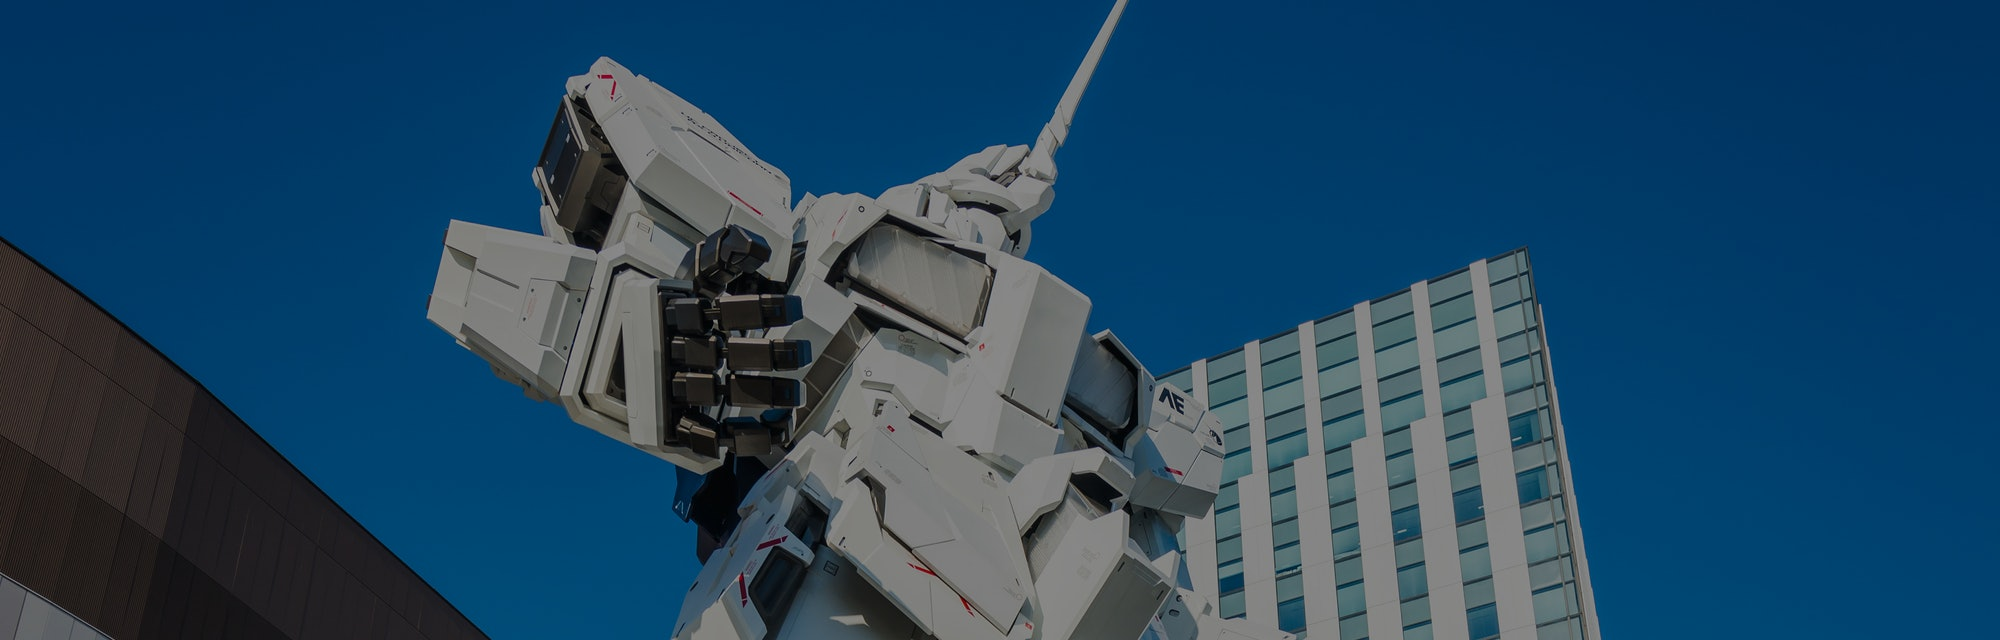 Tourists and shoppers dwarfed by the giant Unicorn Gundam statue outside DiverCity Tokyo Plaza mall on the popular leisure district of Odaiba in Tokyo harbour, Japan.